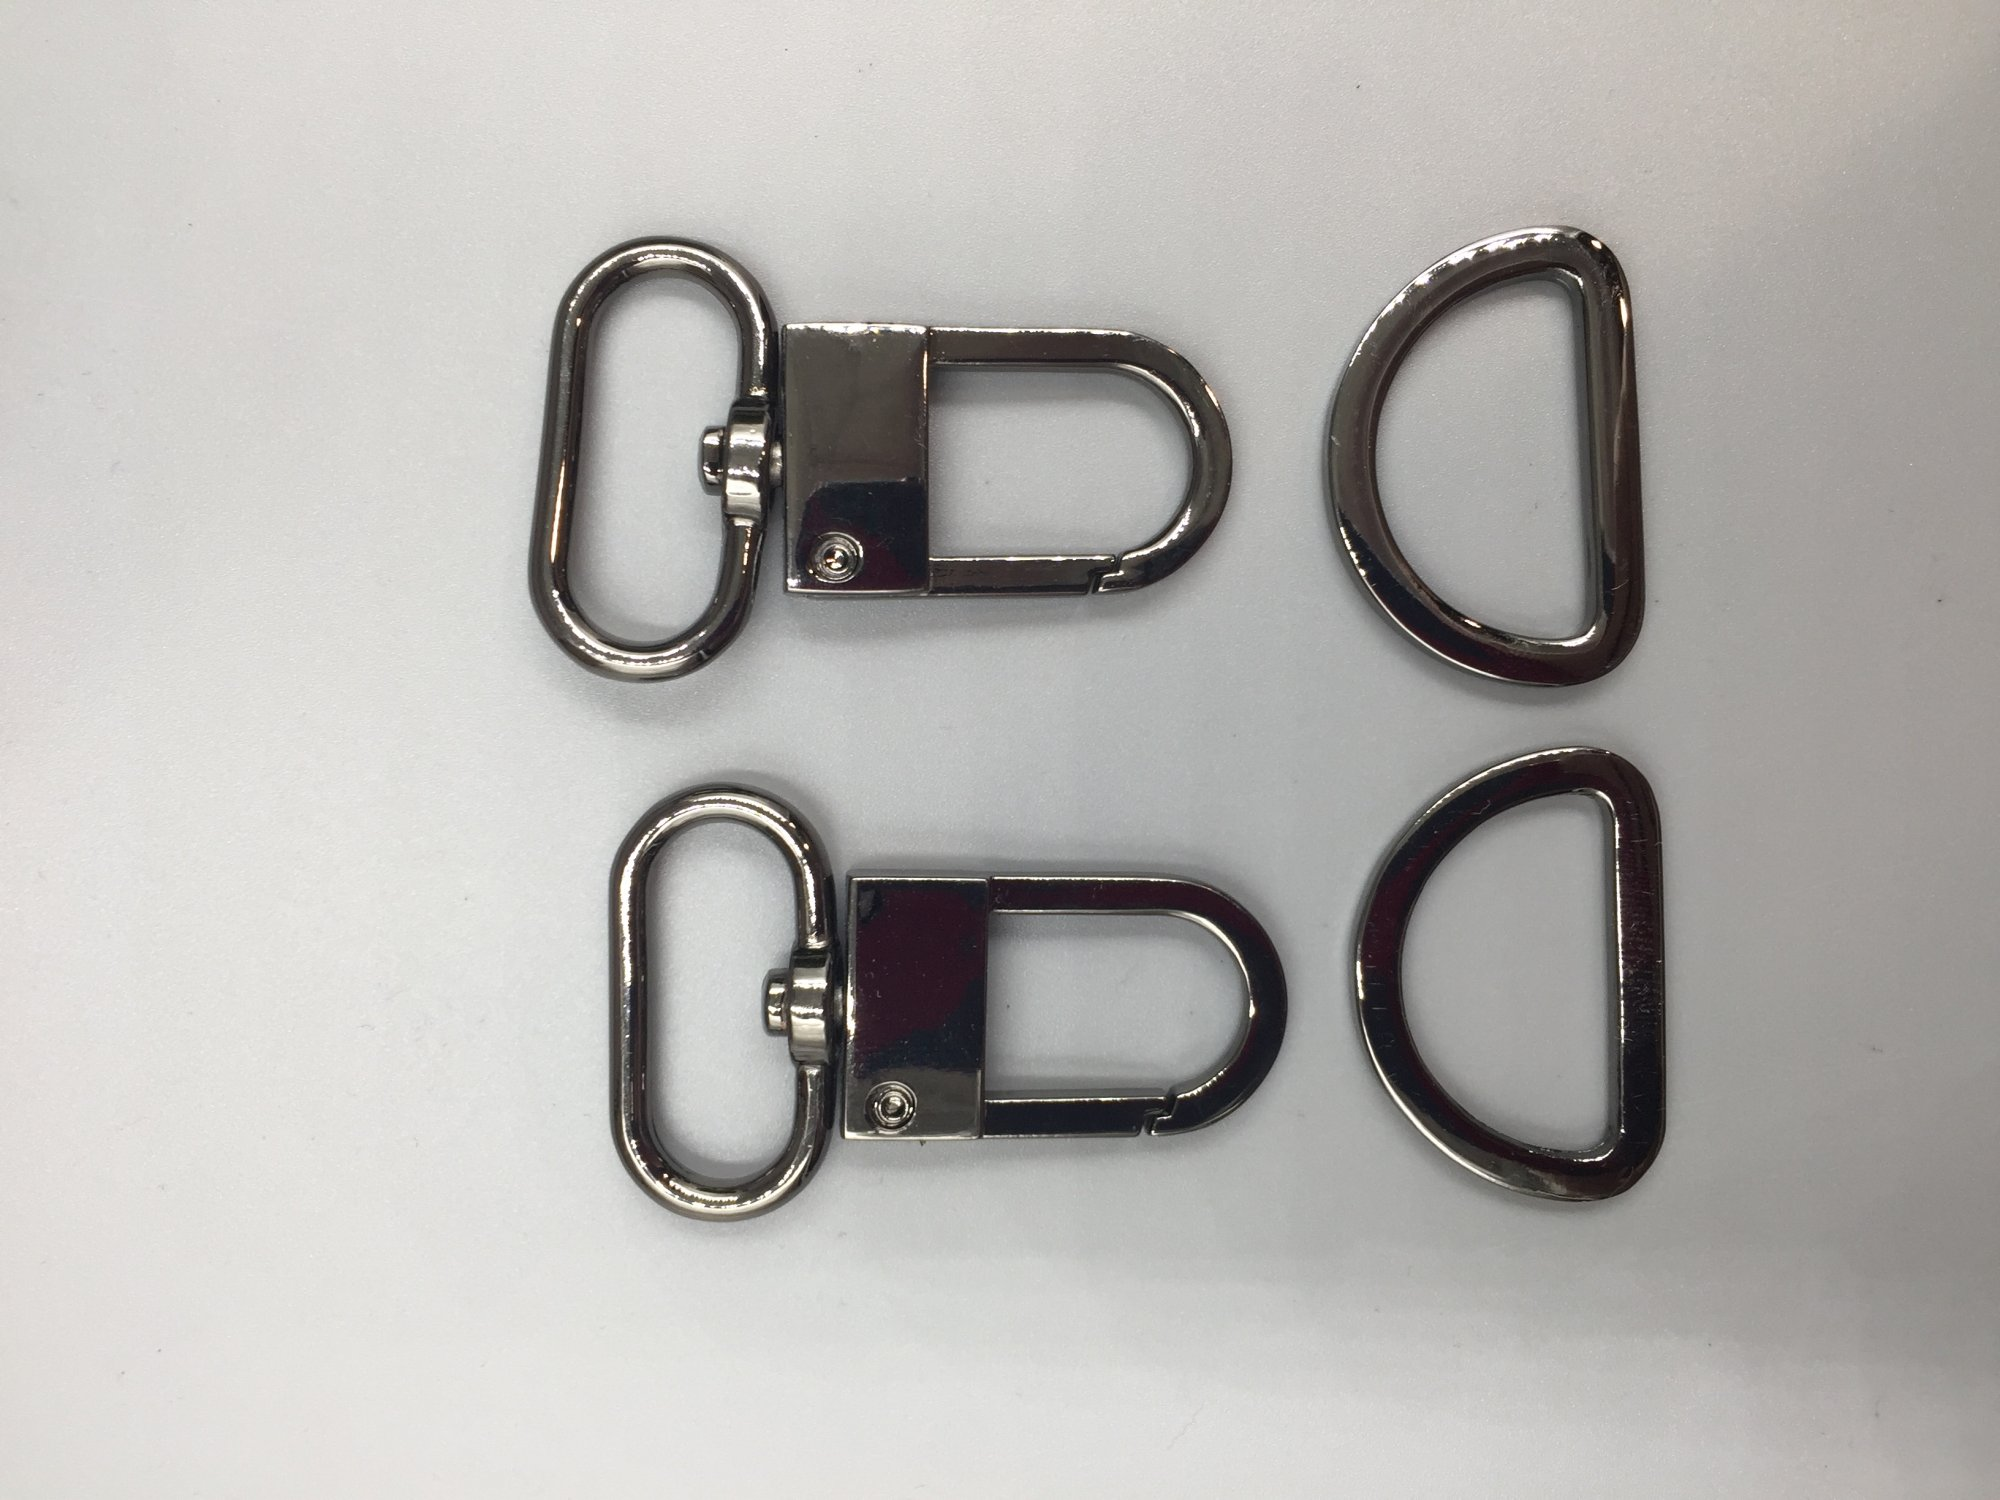 1 Swivel Hook Set - Gun Metal